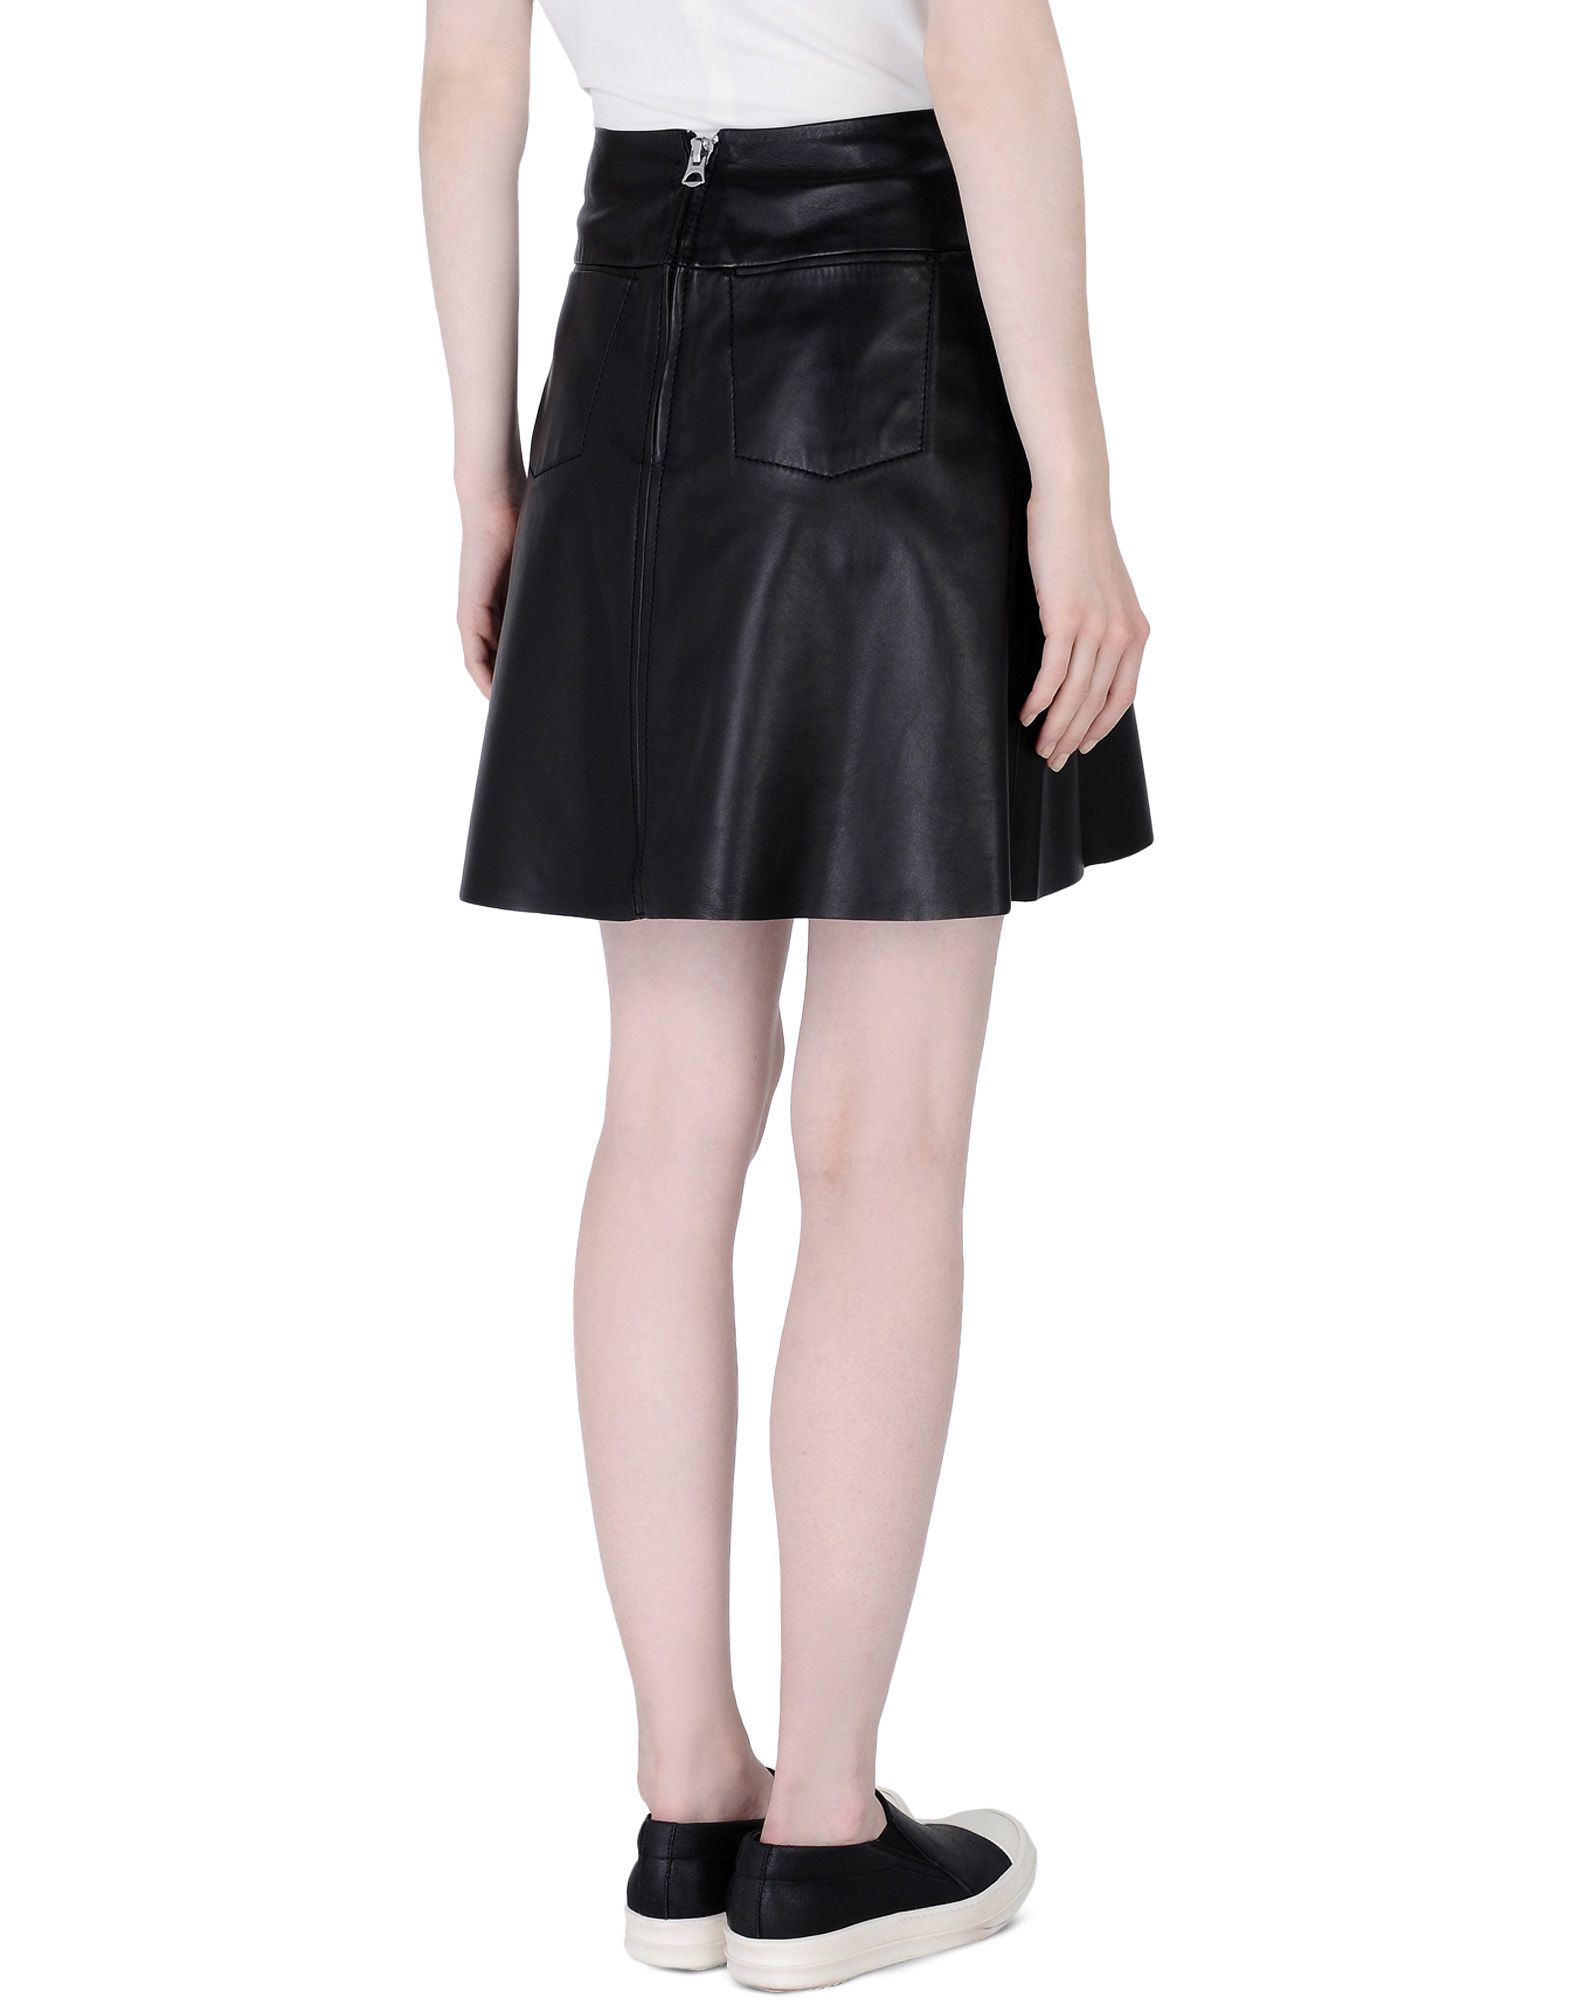 acne leather skirt in black lyst